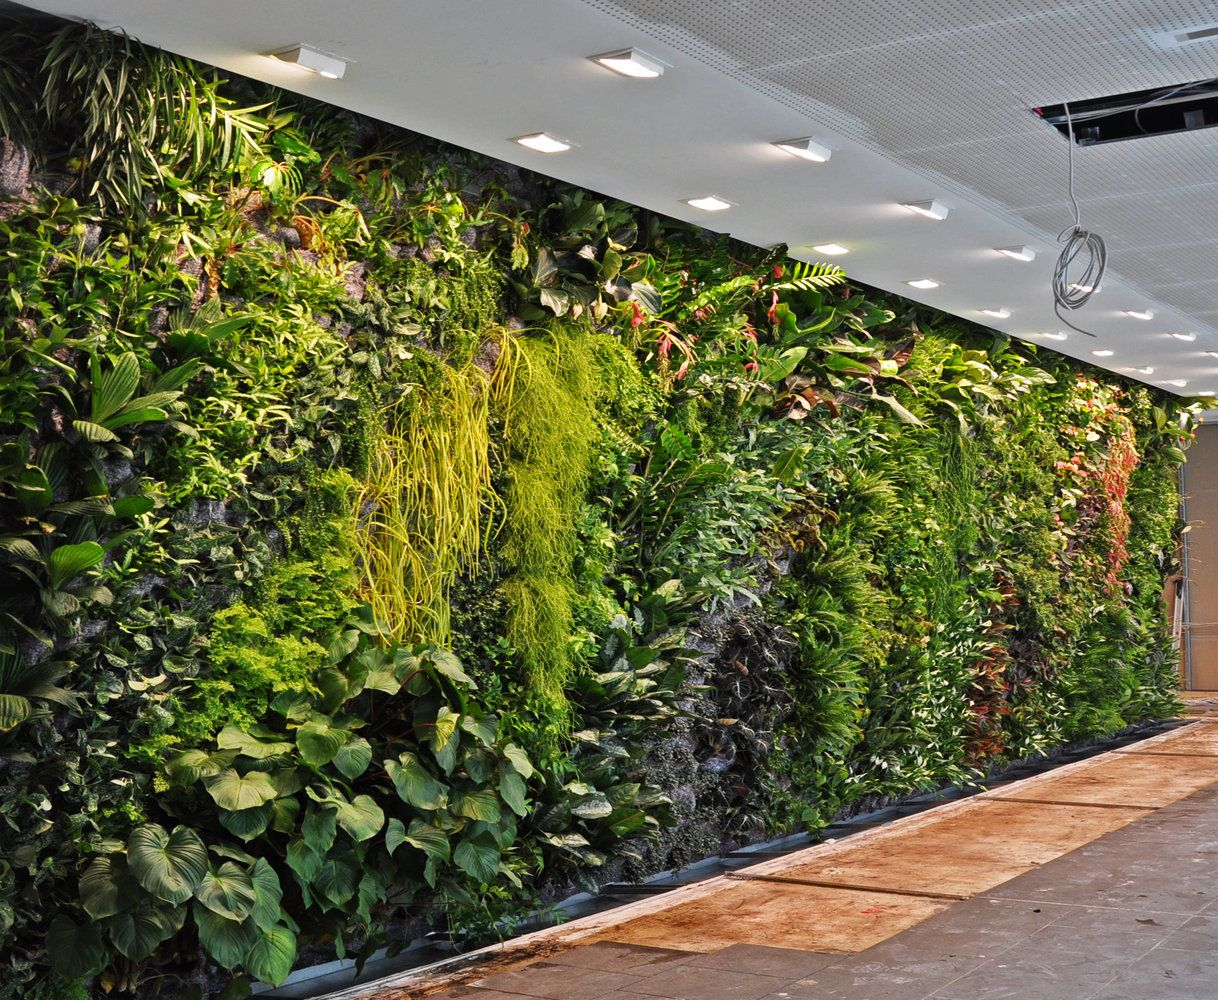 17 amazing vertical garden designs vertical garden for Indoor gardening design